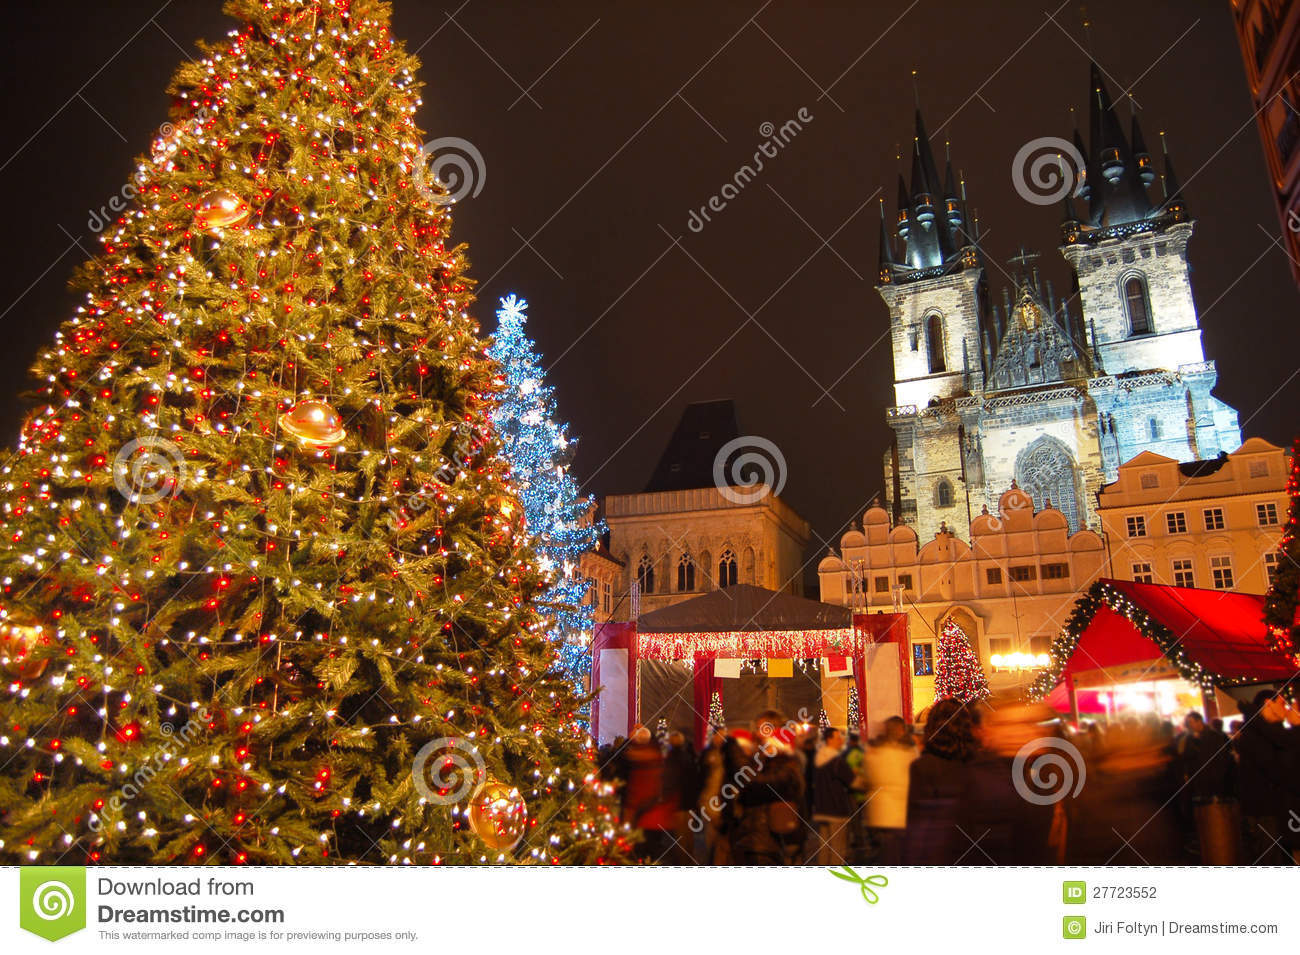 weihnachten in prag stockfotografie bild 27723552. Black Bedroom Furniture Sets. Home Design Ideas